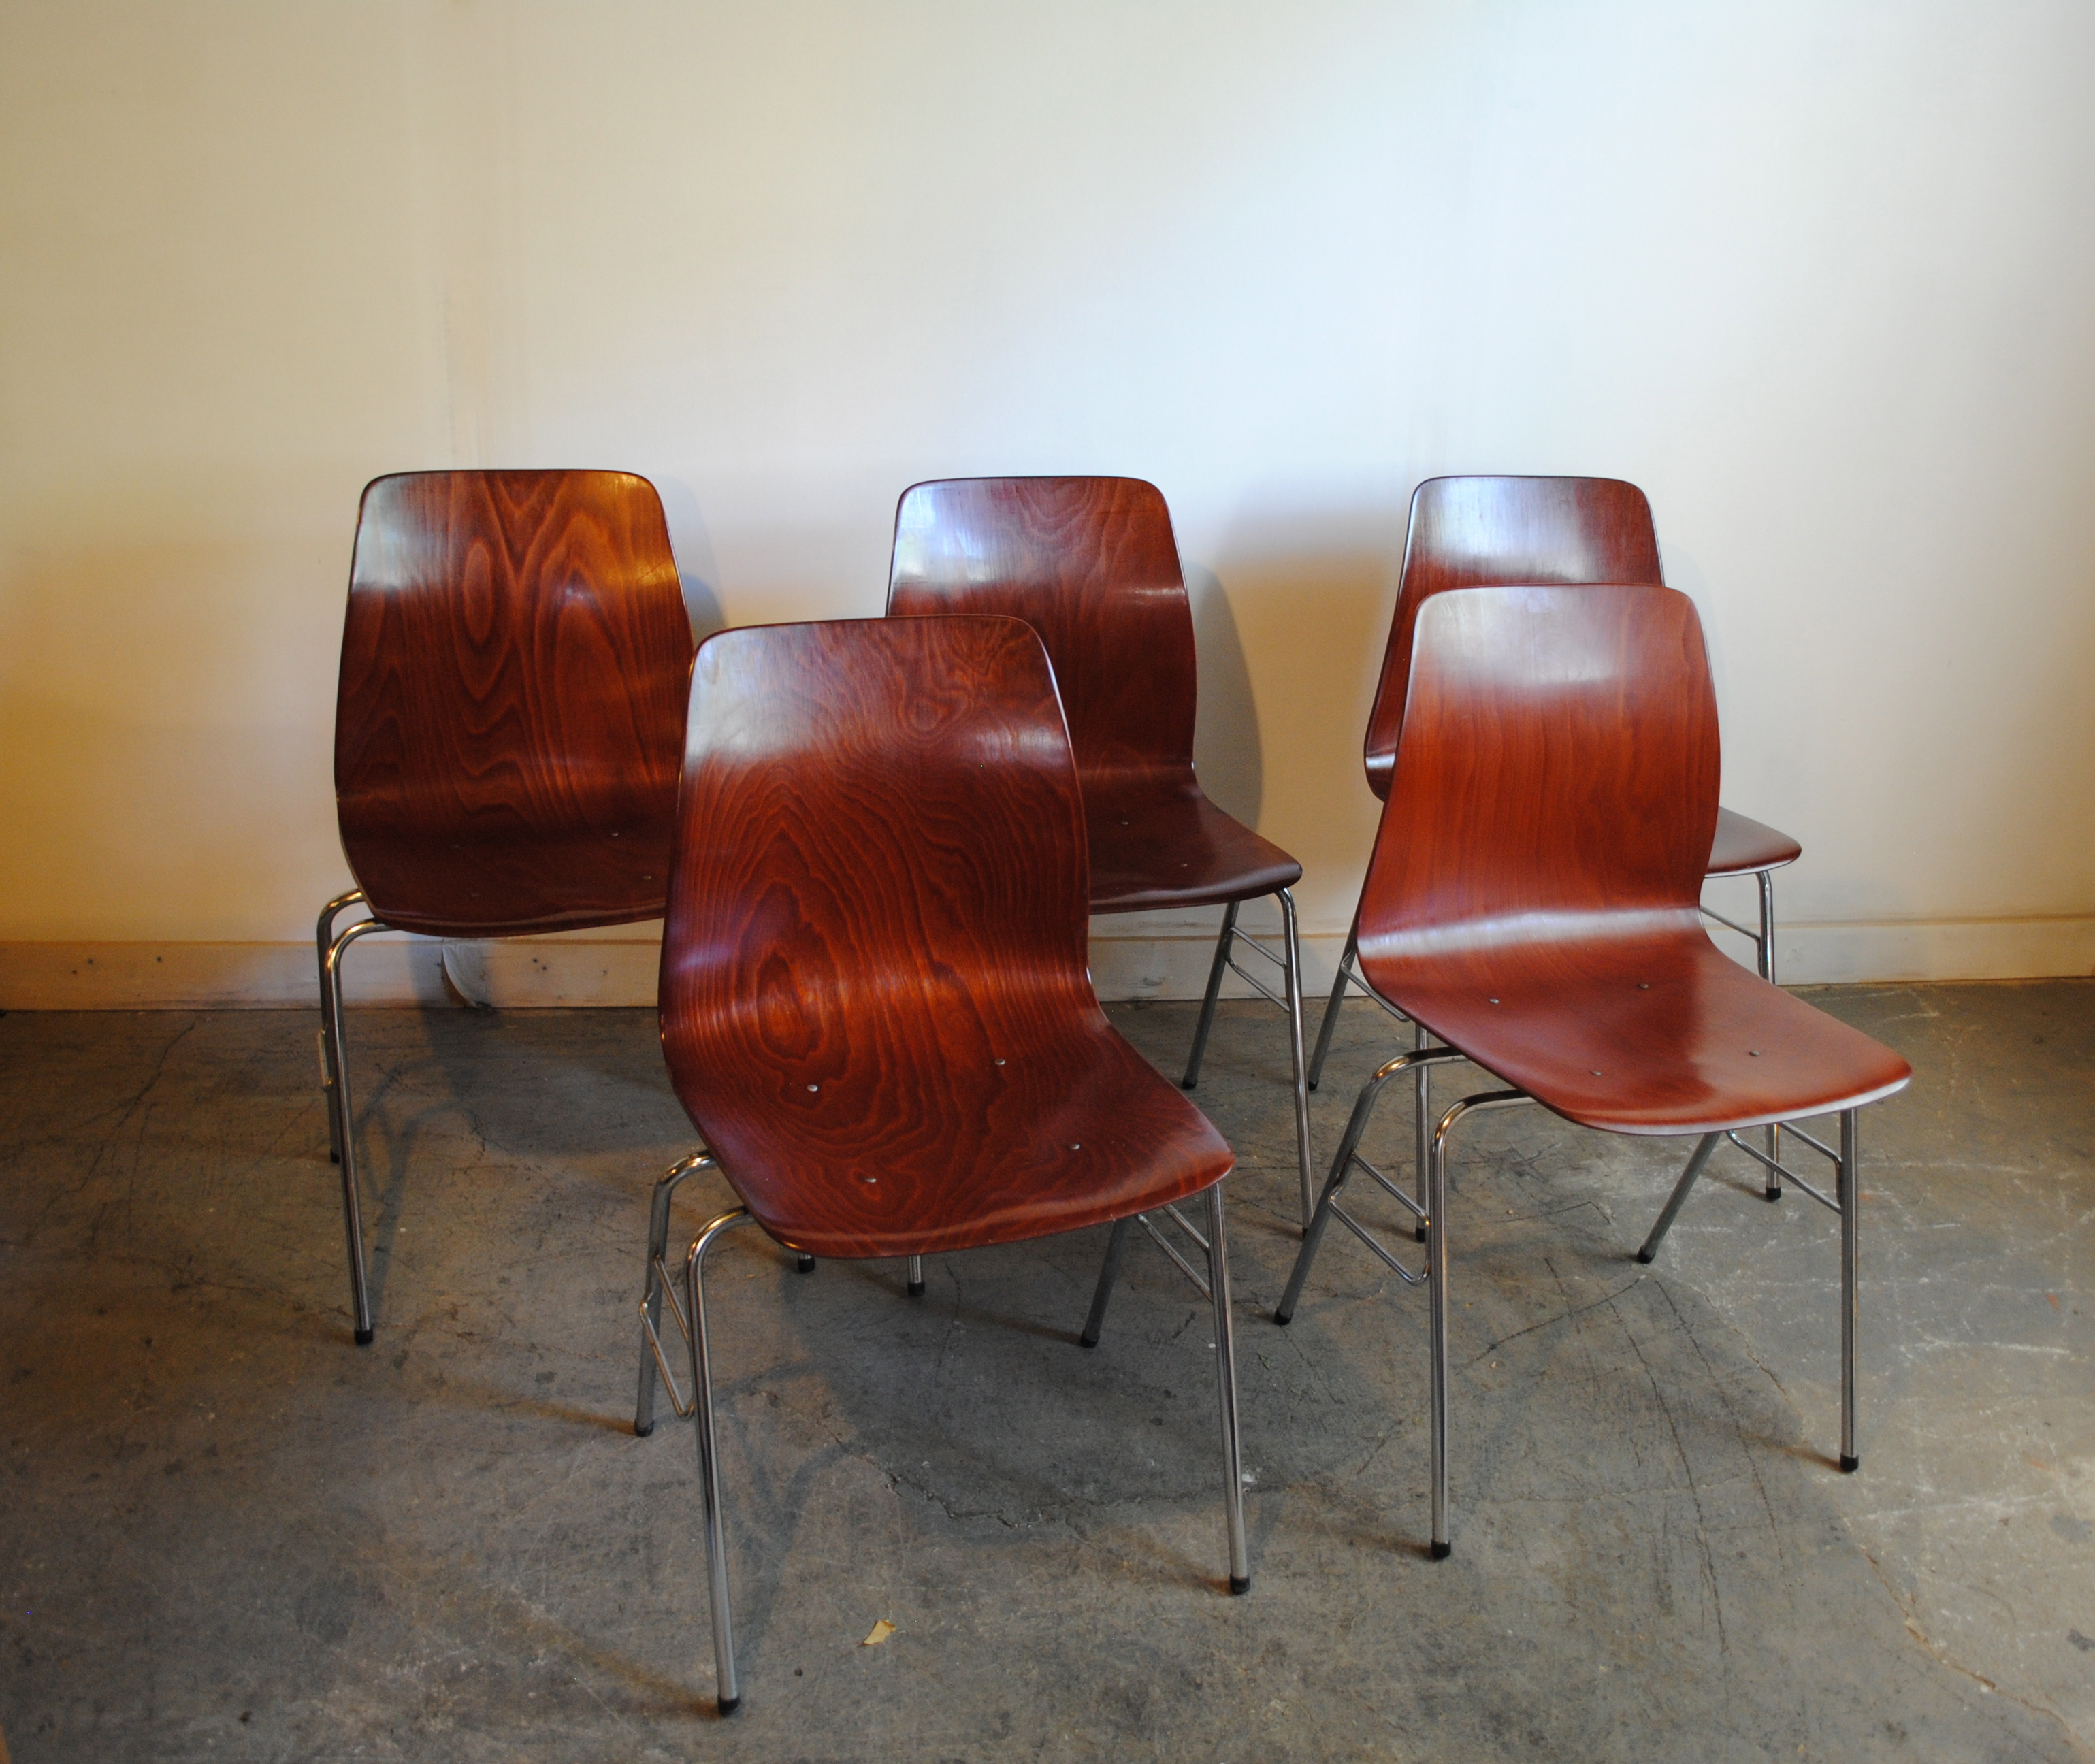 Charmant Set Of Five Vintage Mid Century Stacking Bentwood Chairs By Pagholz. Made  In West Germany. Please Contact Me With Any Questions.